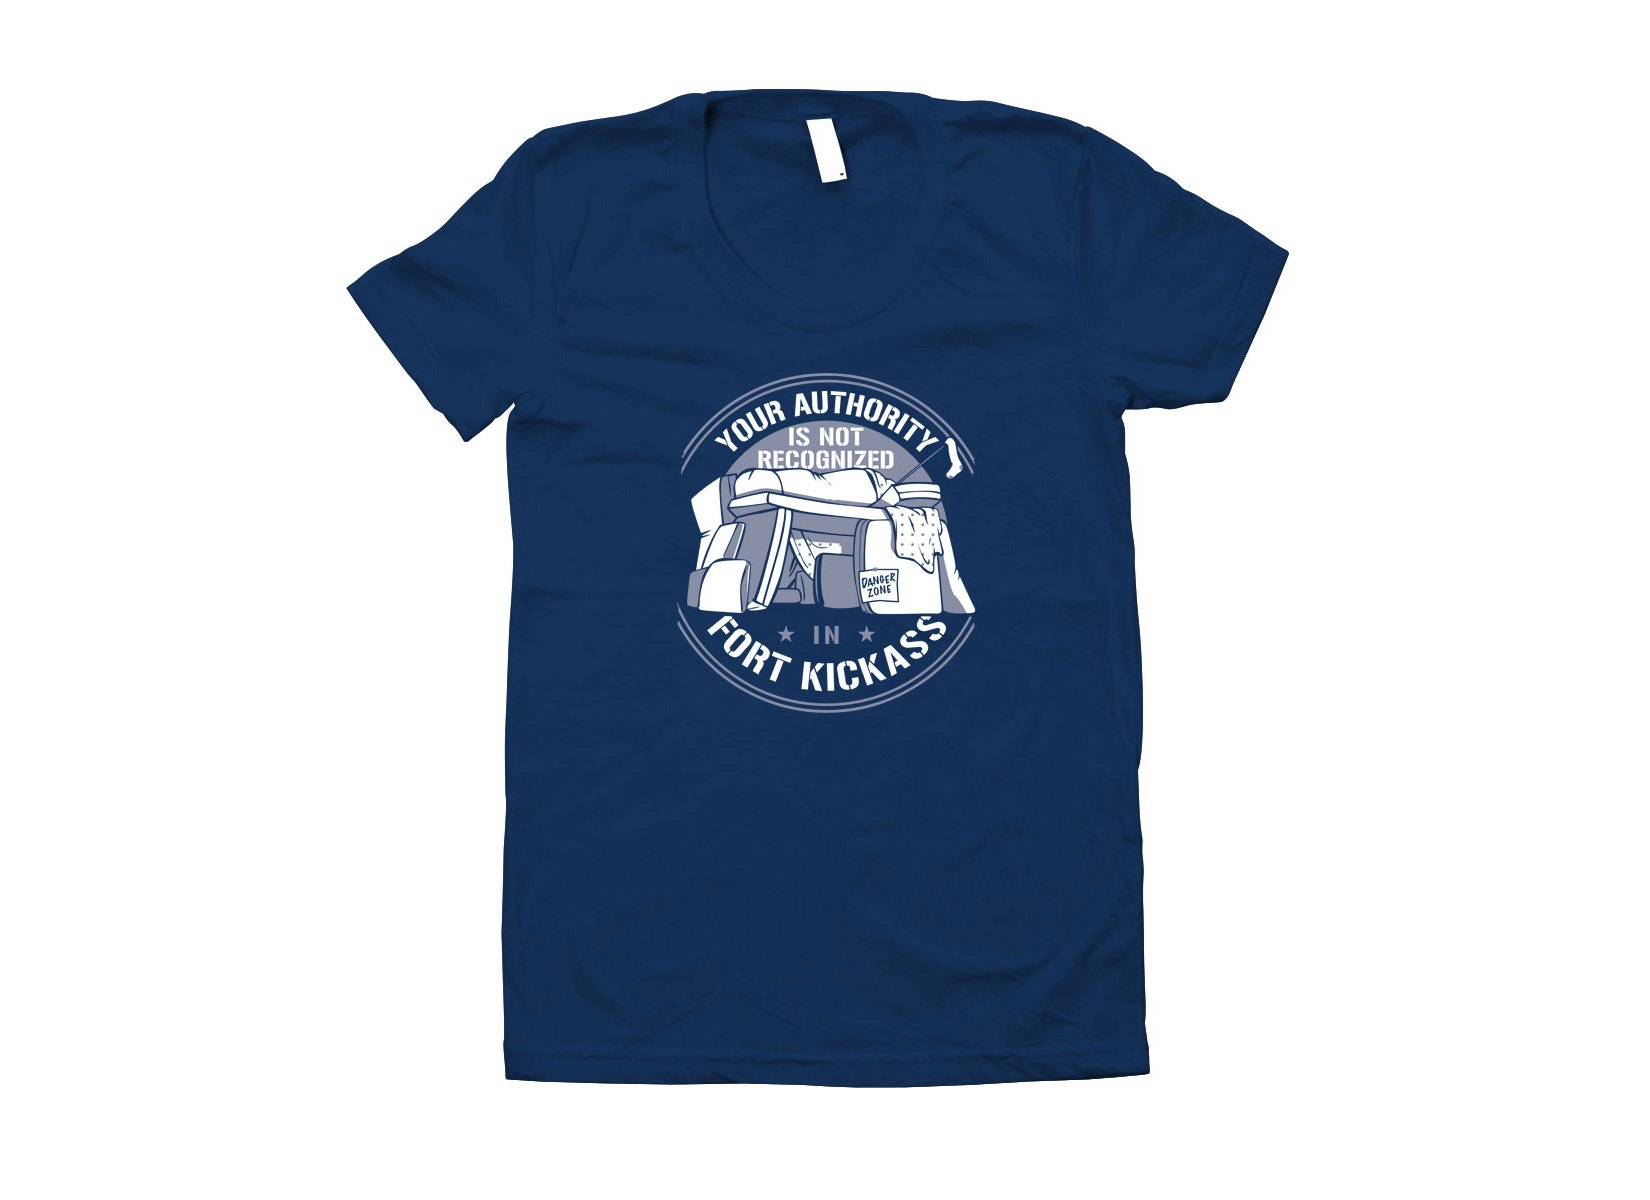 Your Authority Is Not Recognized In Fort Kickass on Juniors T-Shirt